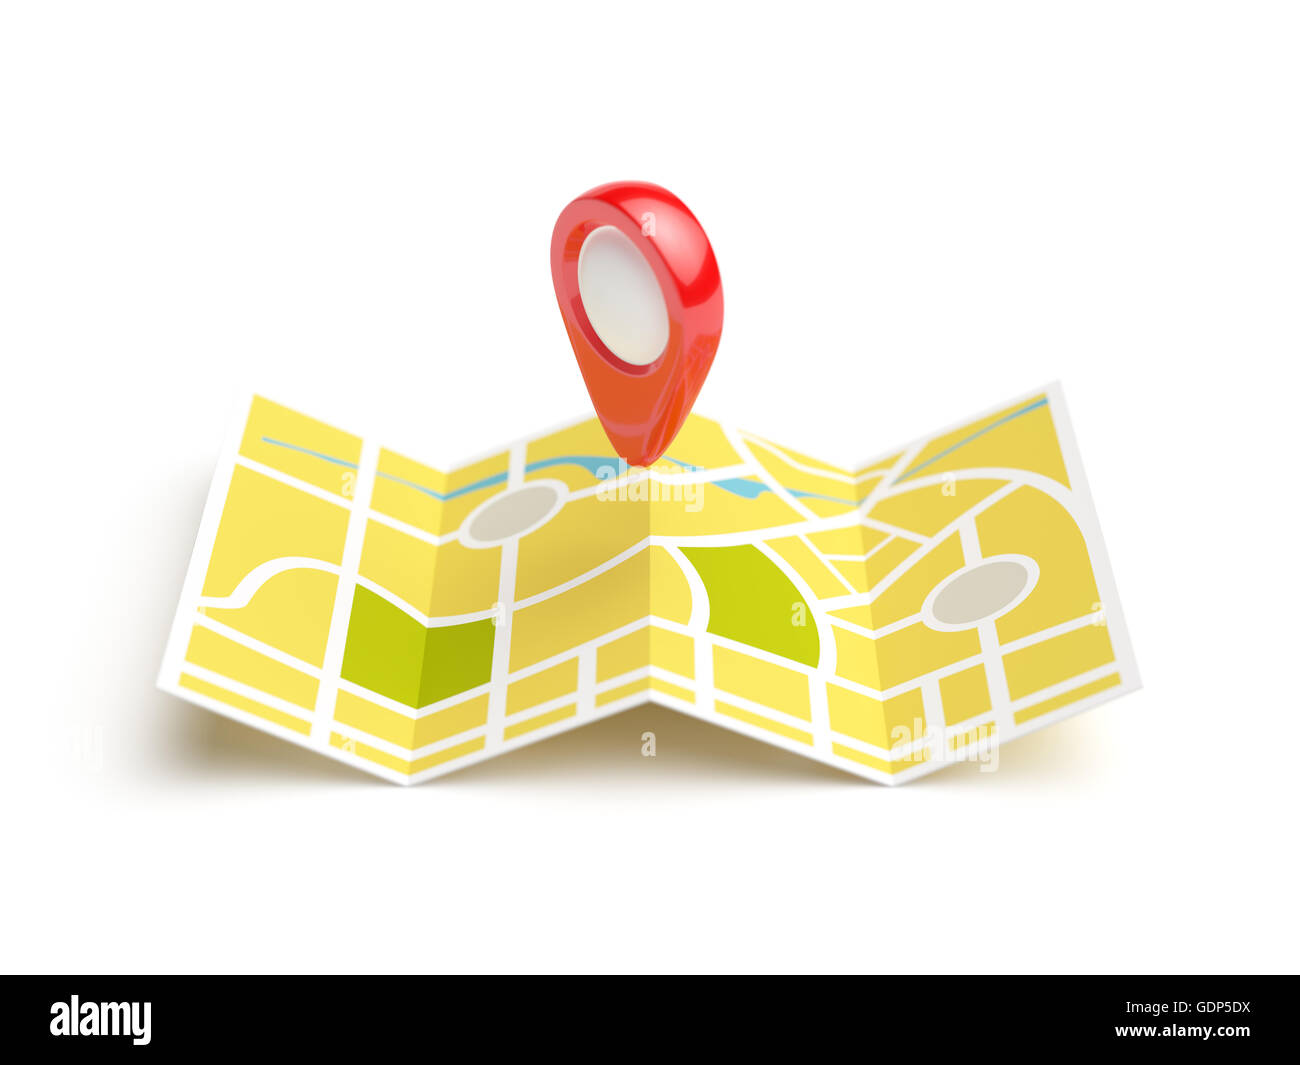 Navigation map with red position pin. Travel concept. Isolated 3d rendering illustration on white background - Stock Image